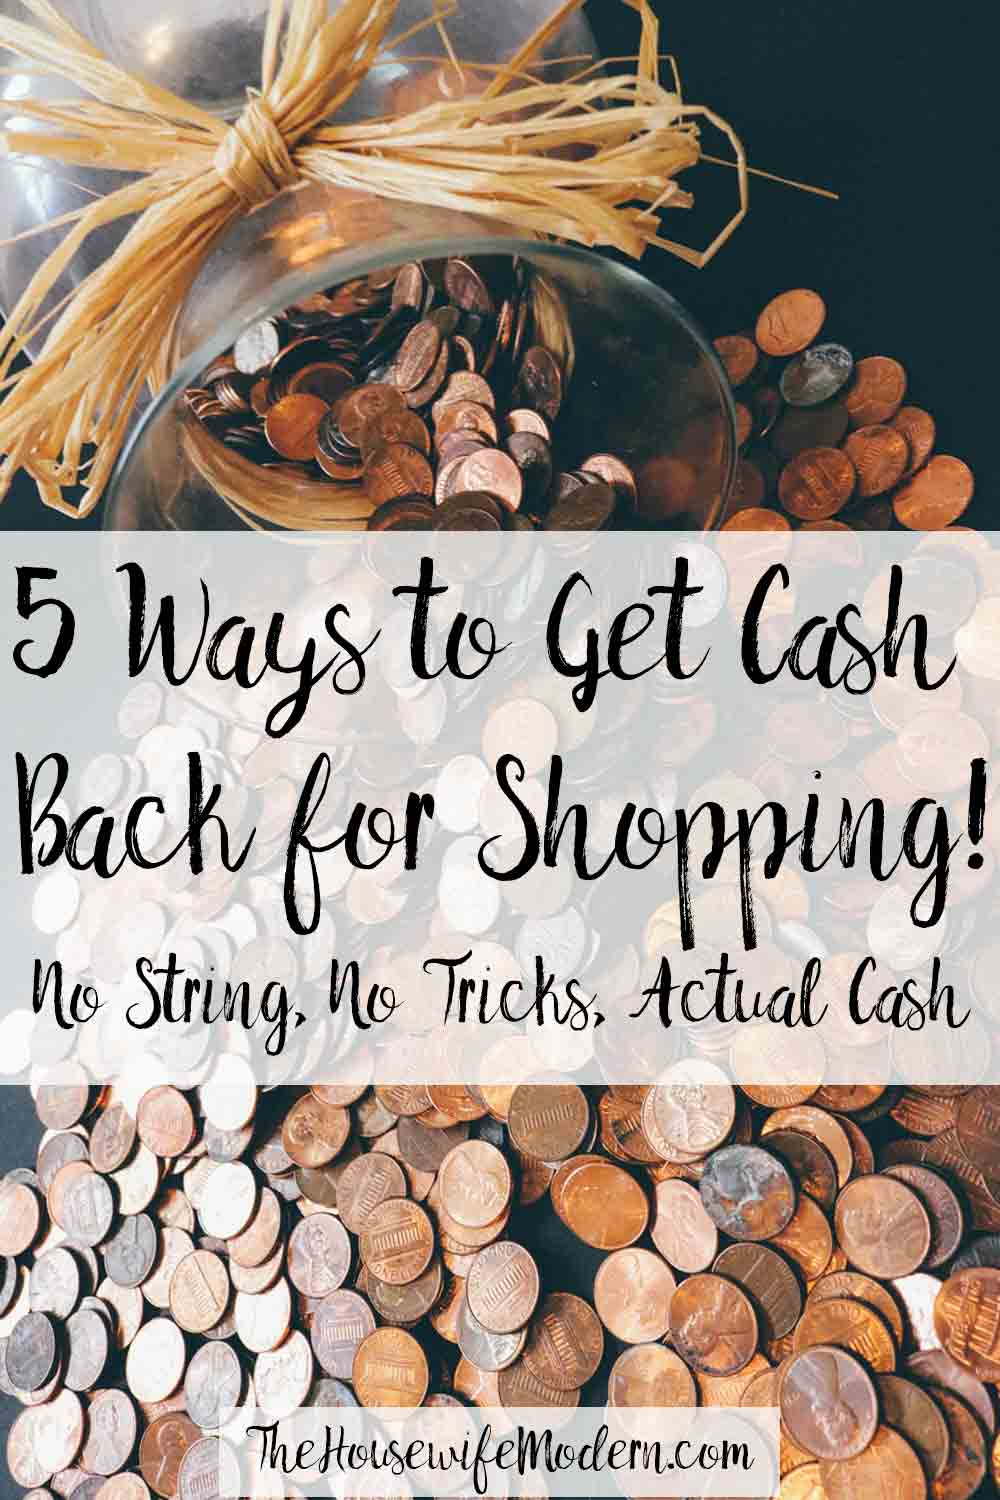 How to get cash back for shopping. No strings, no tricks…actual cash. 5 ways to get cash back for shopping and exactly how they work.